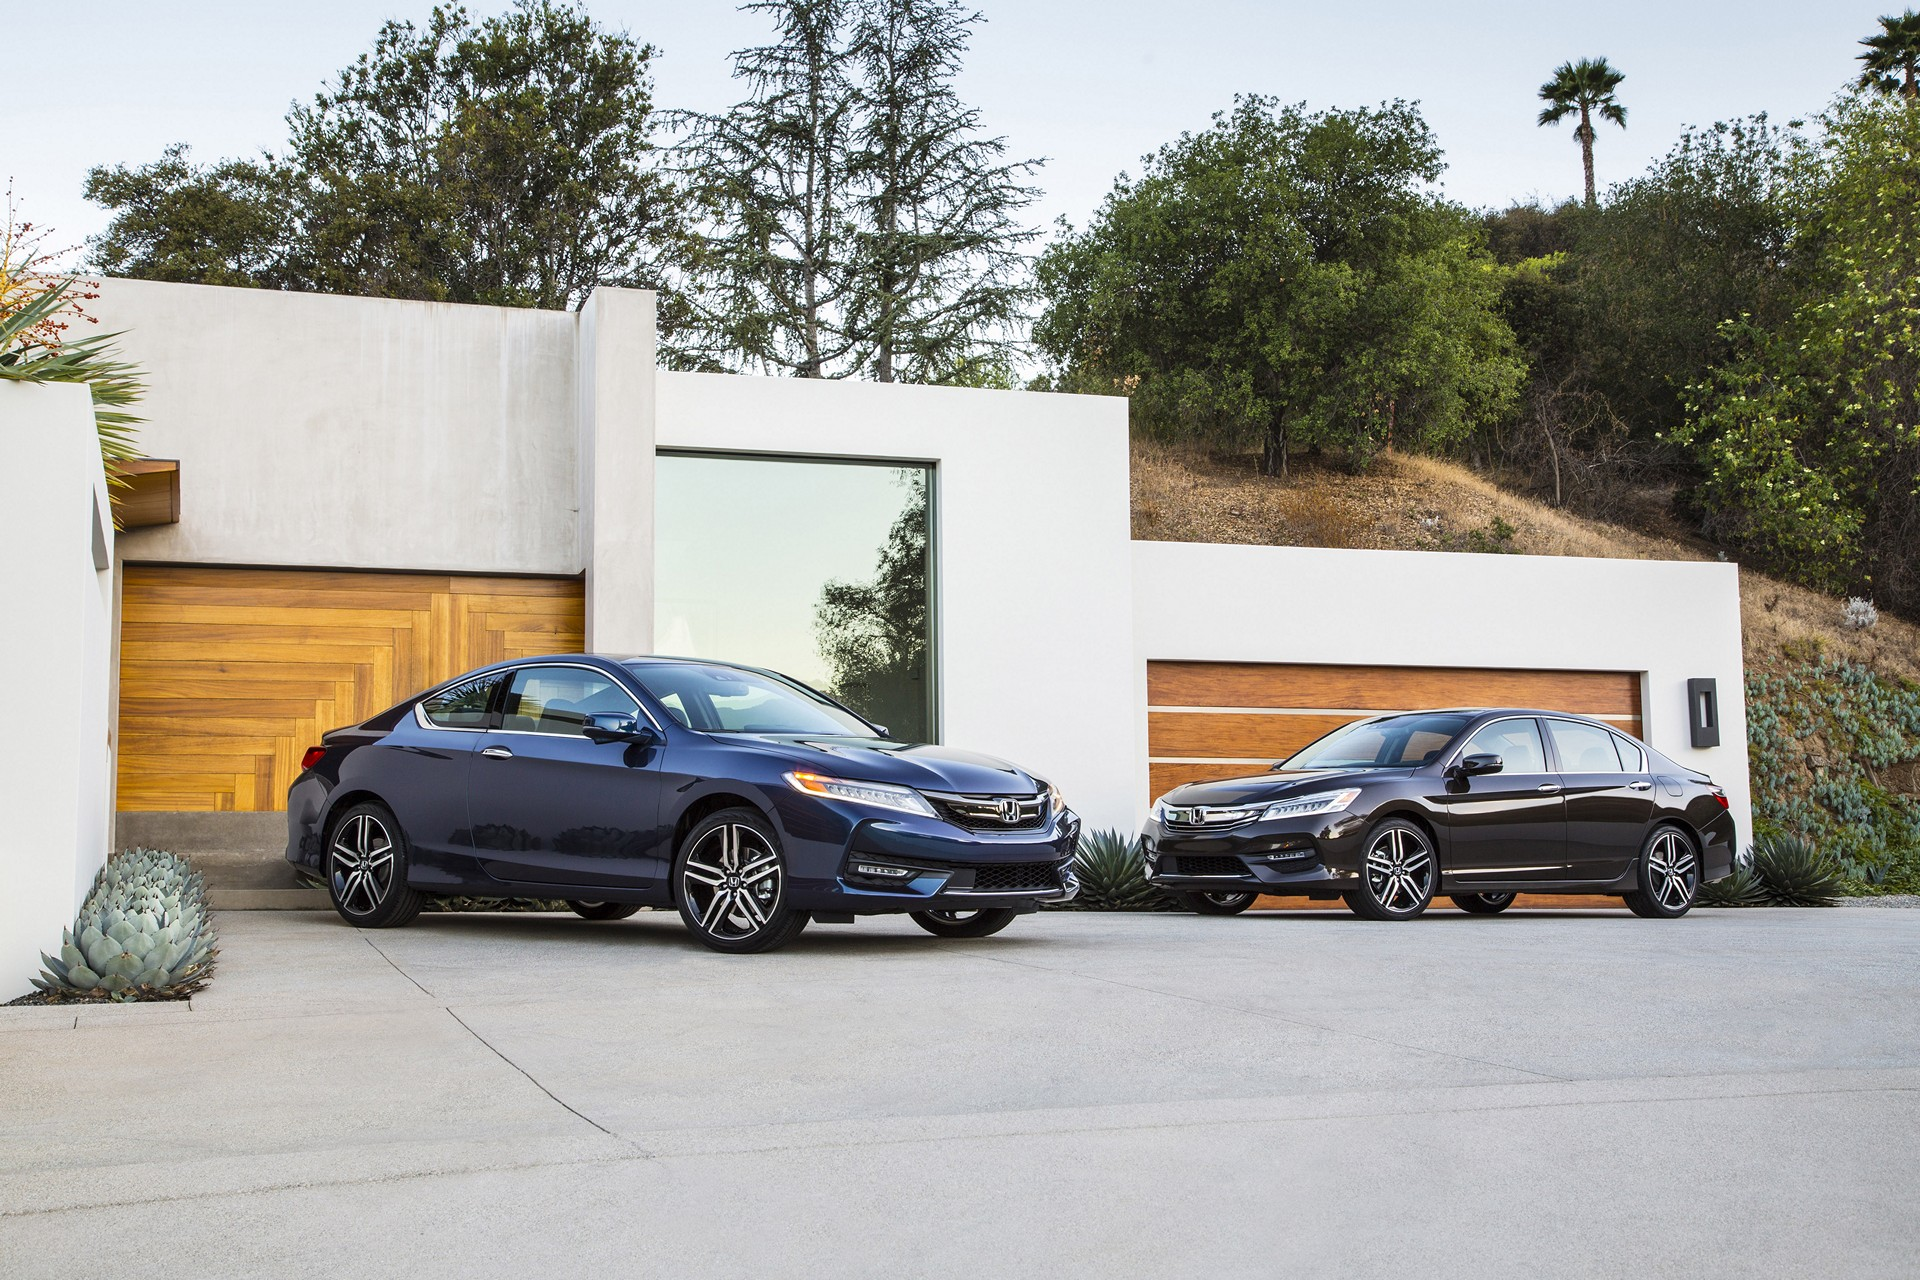 2016 Honda Accord Sedan Touring and Accord Coupe Touring © Honda Motor Co., Ltd.